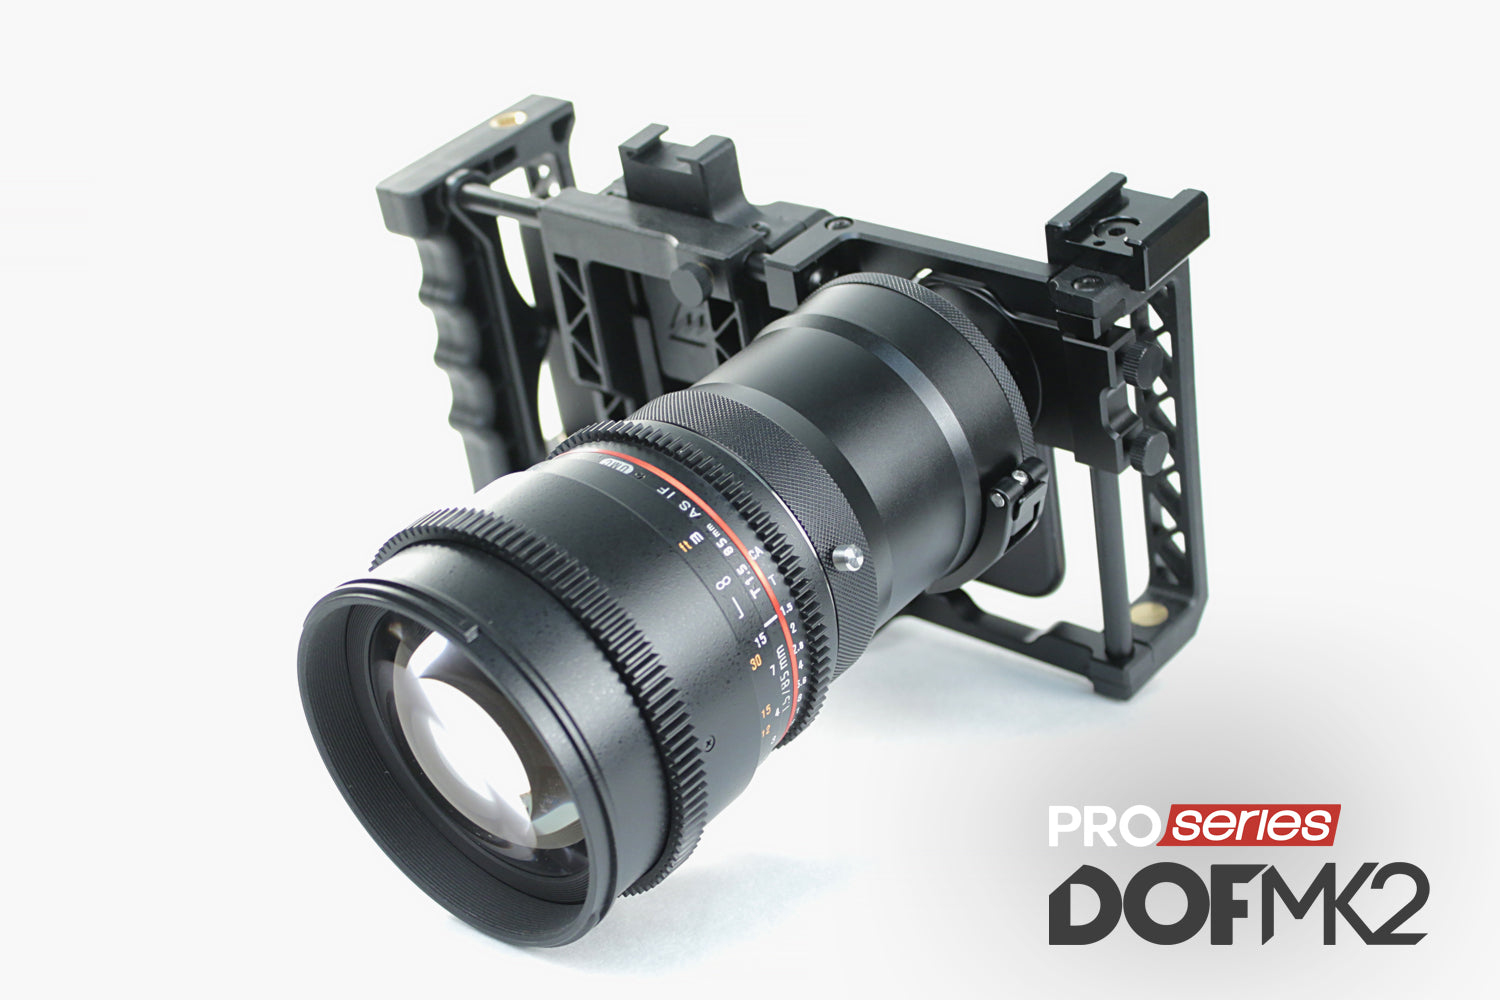 Beastgrip DOF mk2 pro series depth of field 35mm adapter